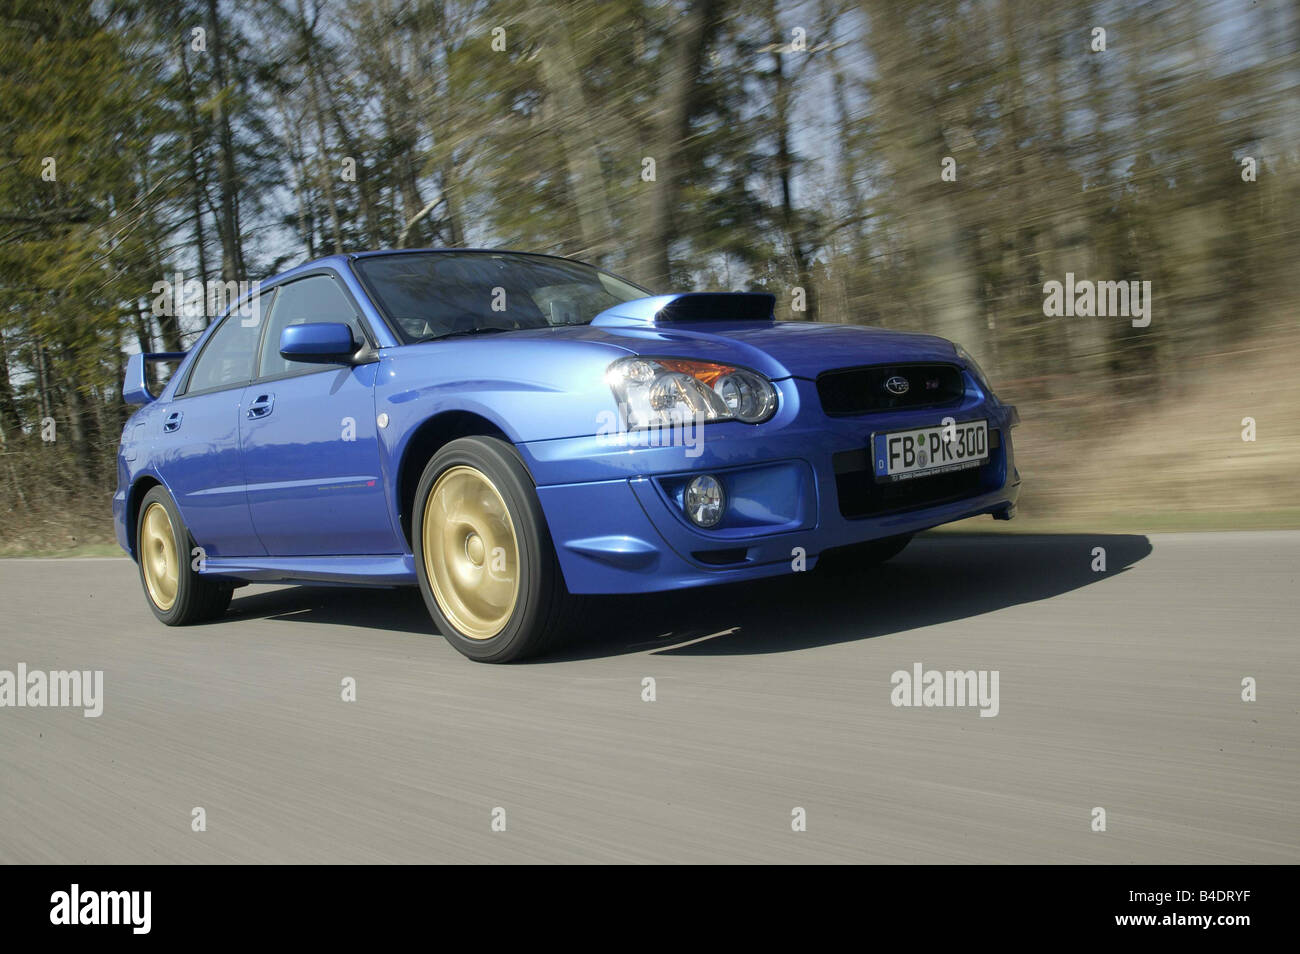 hight resolution of car subaru impreza wrx sti limousine coupe lower middle sized class model year 2003 blue moving country road diagonal f